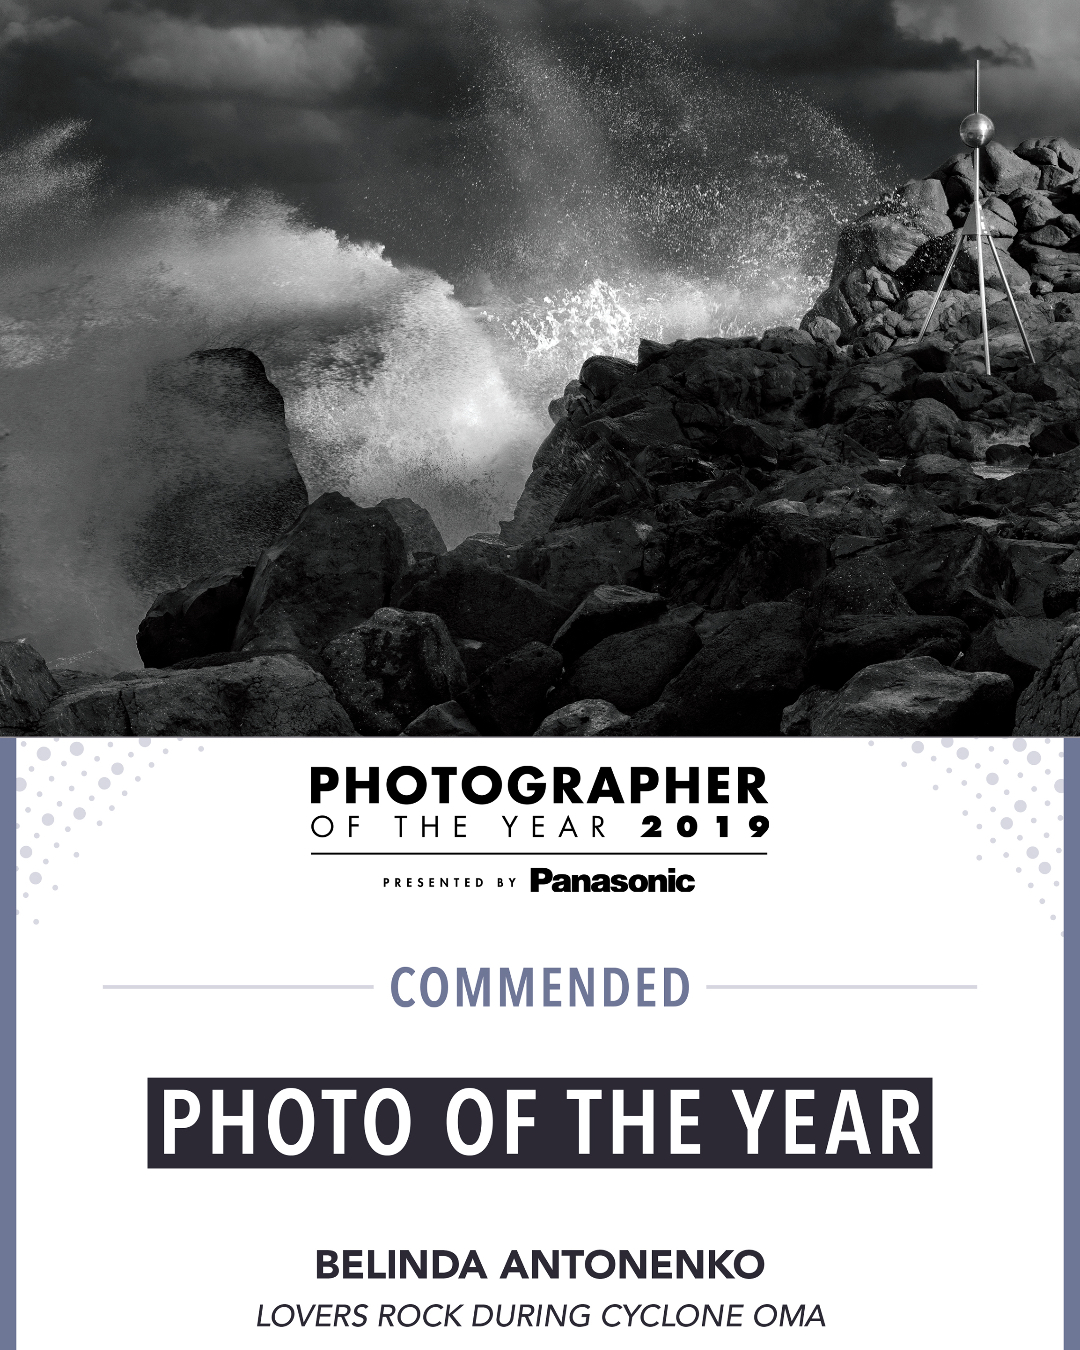 Photography -  Photographer Of The Year Award - Lovers Rock During Cyclone Oma